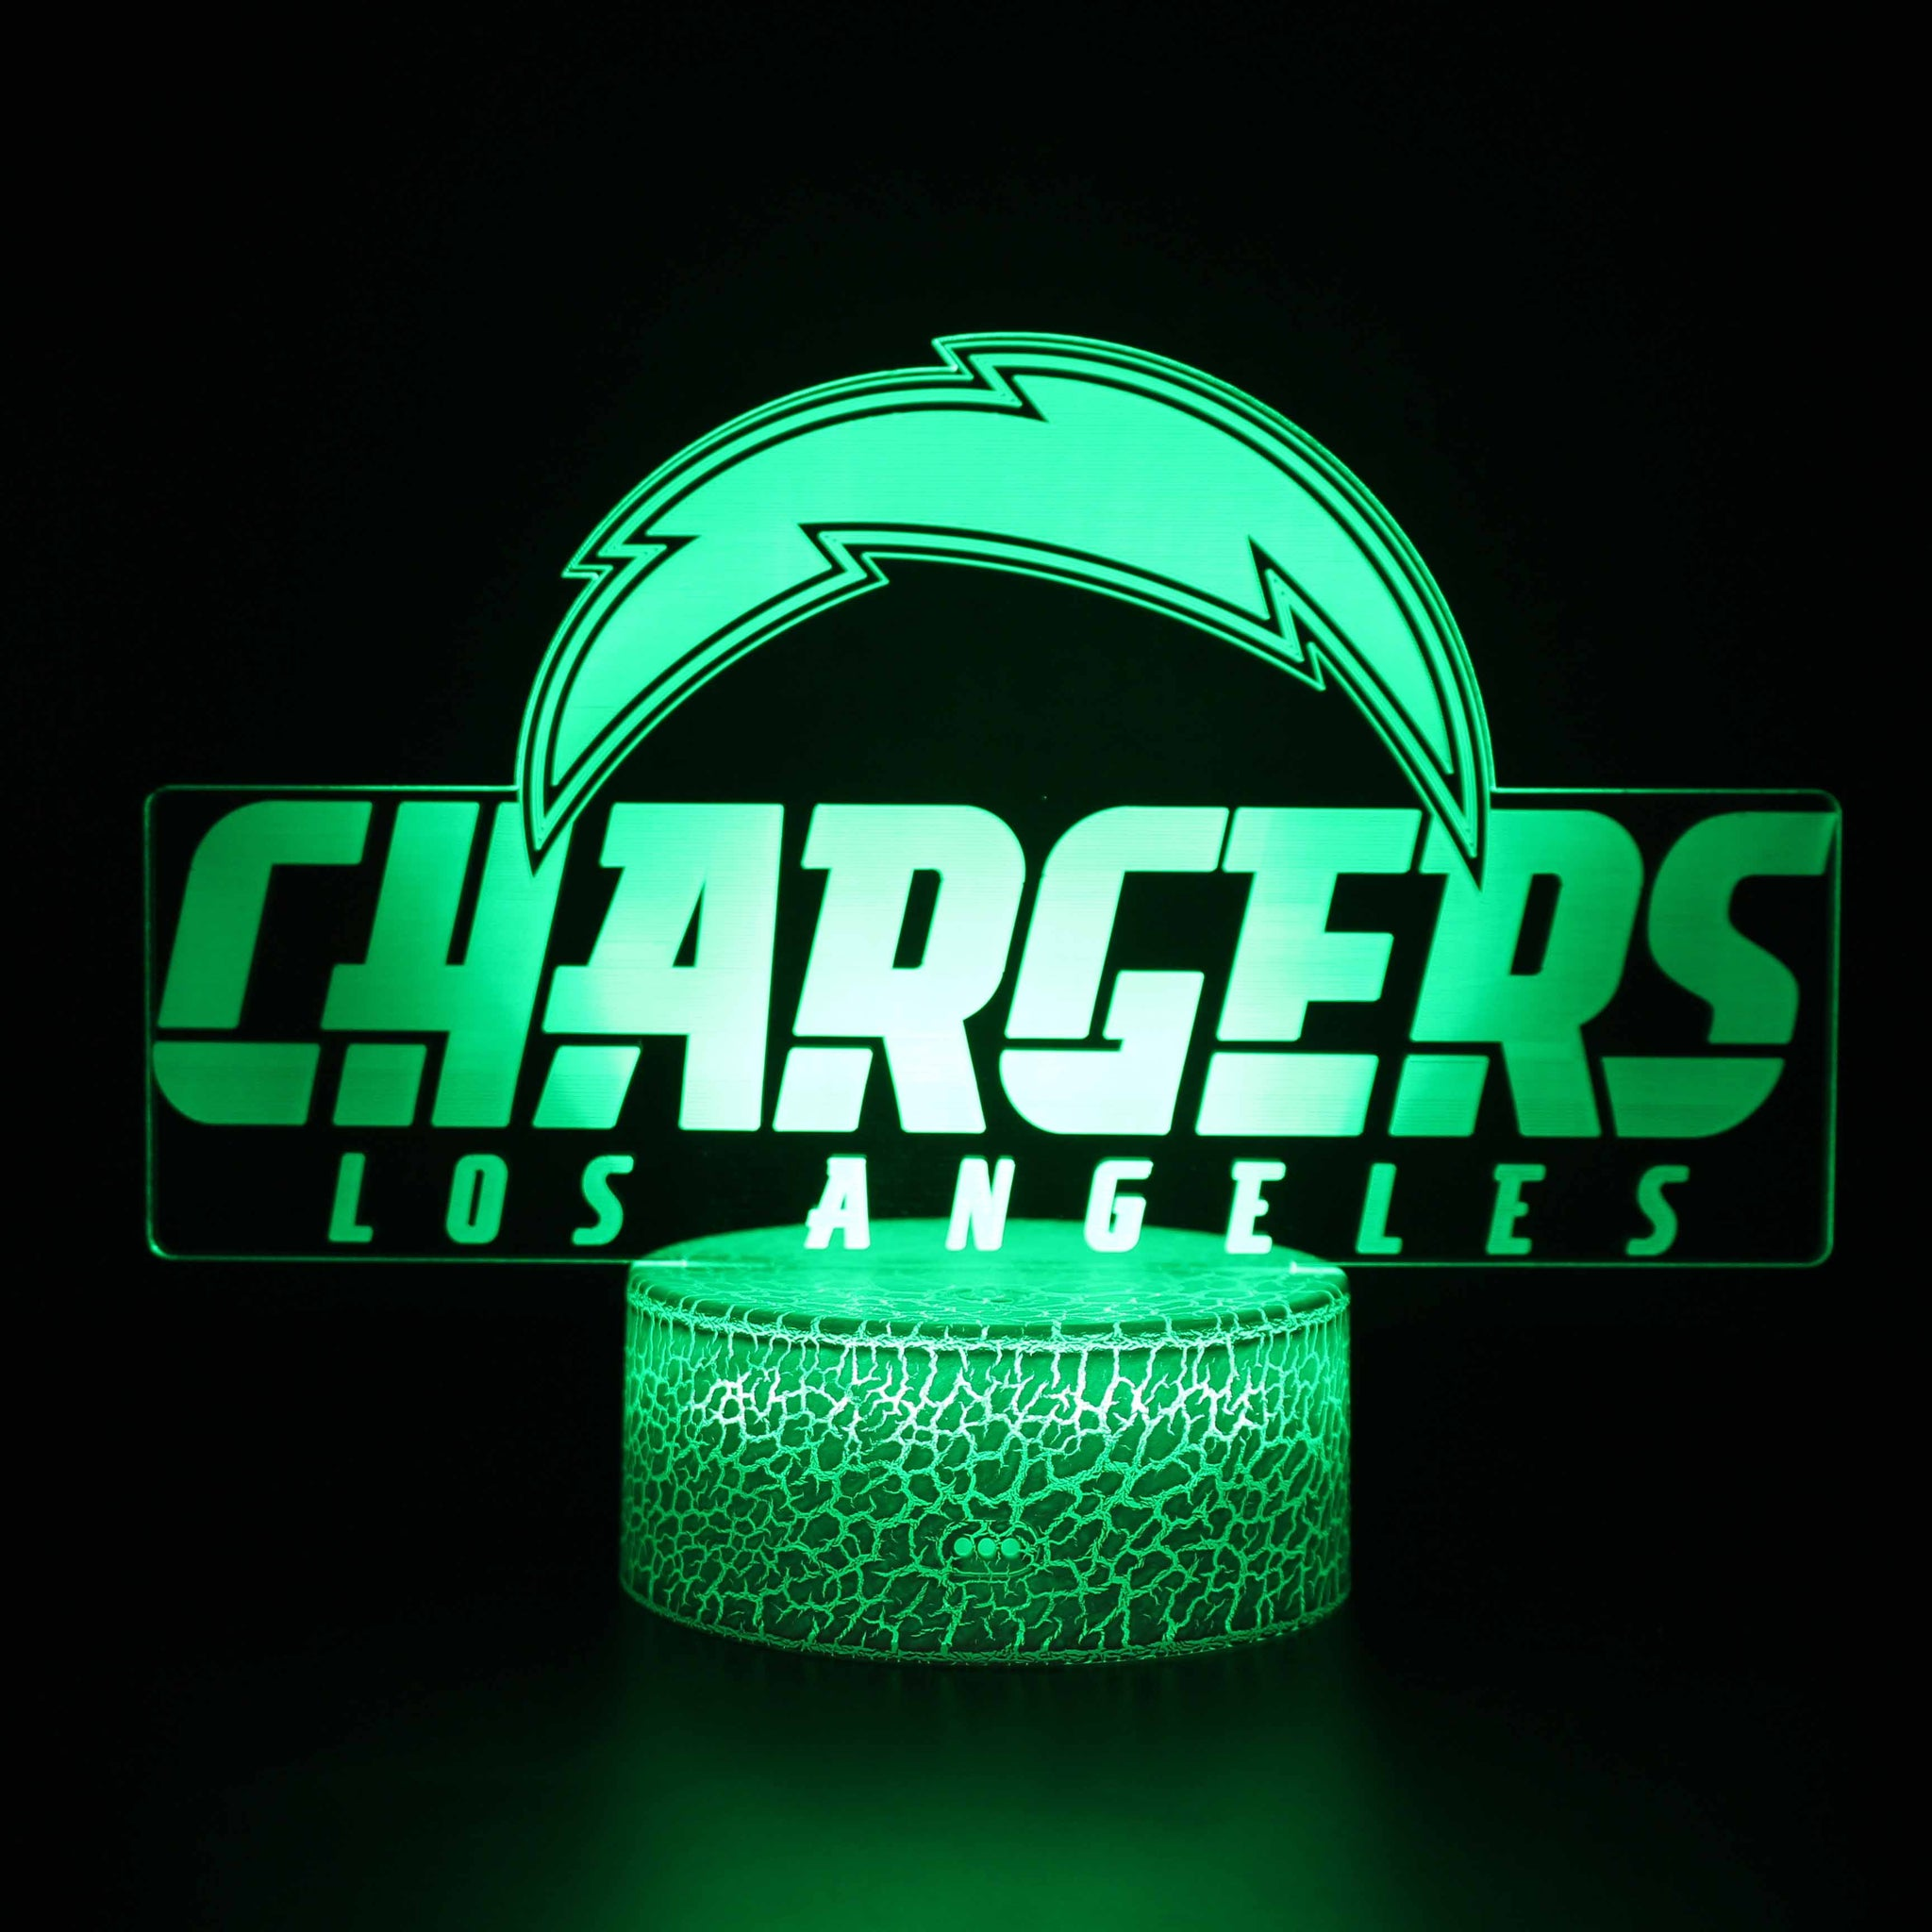 Los Angeles Chargers Logo NFL 3D Night Light